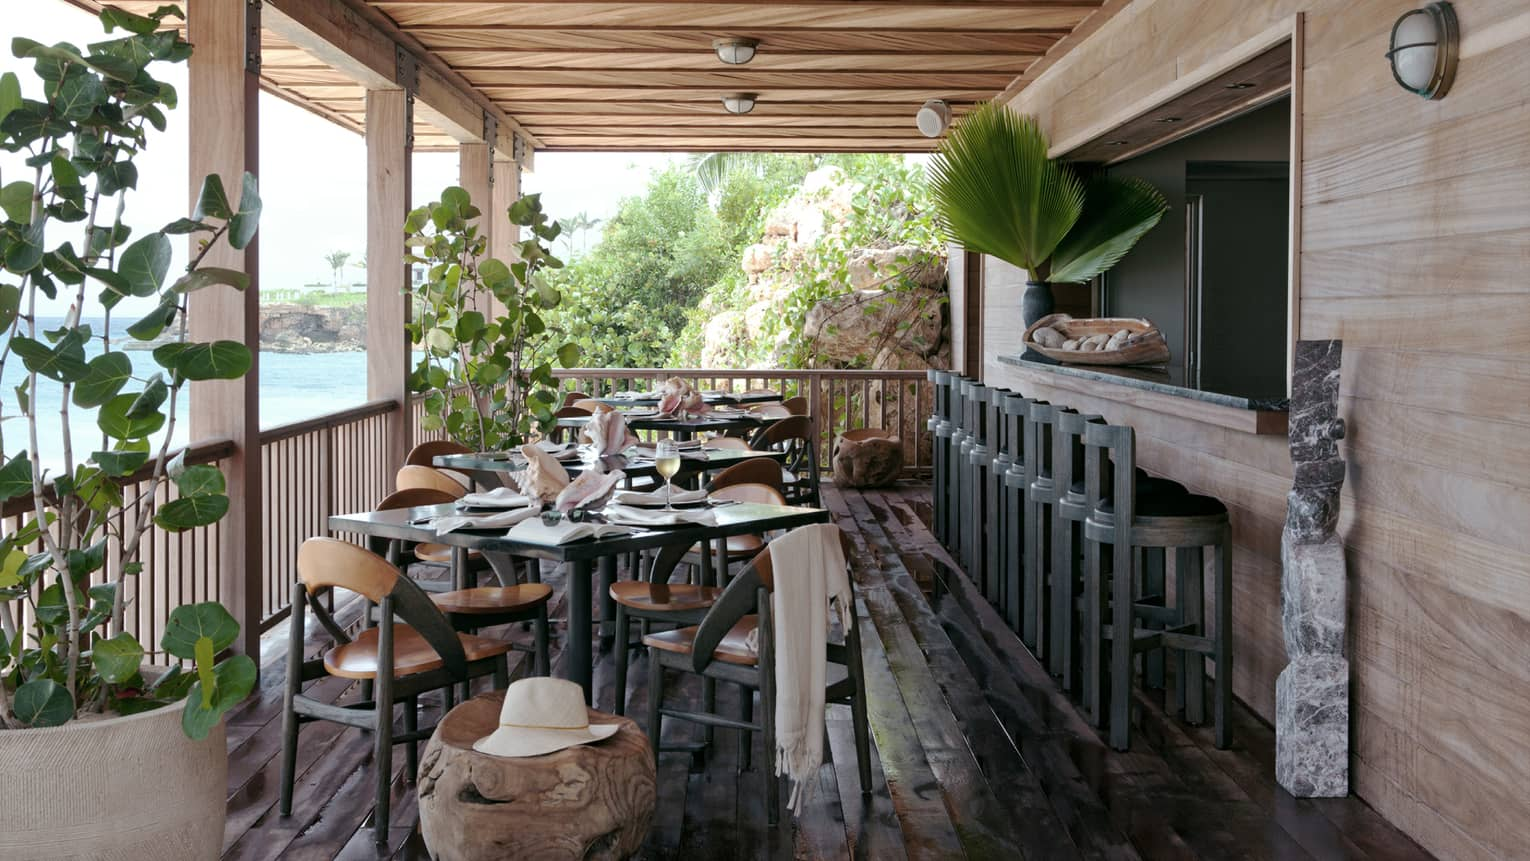 Cosy Half Shell Beach Bar table and chairs on small rustic wood porch, stools along bar, potted plants